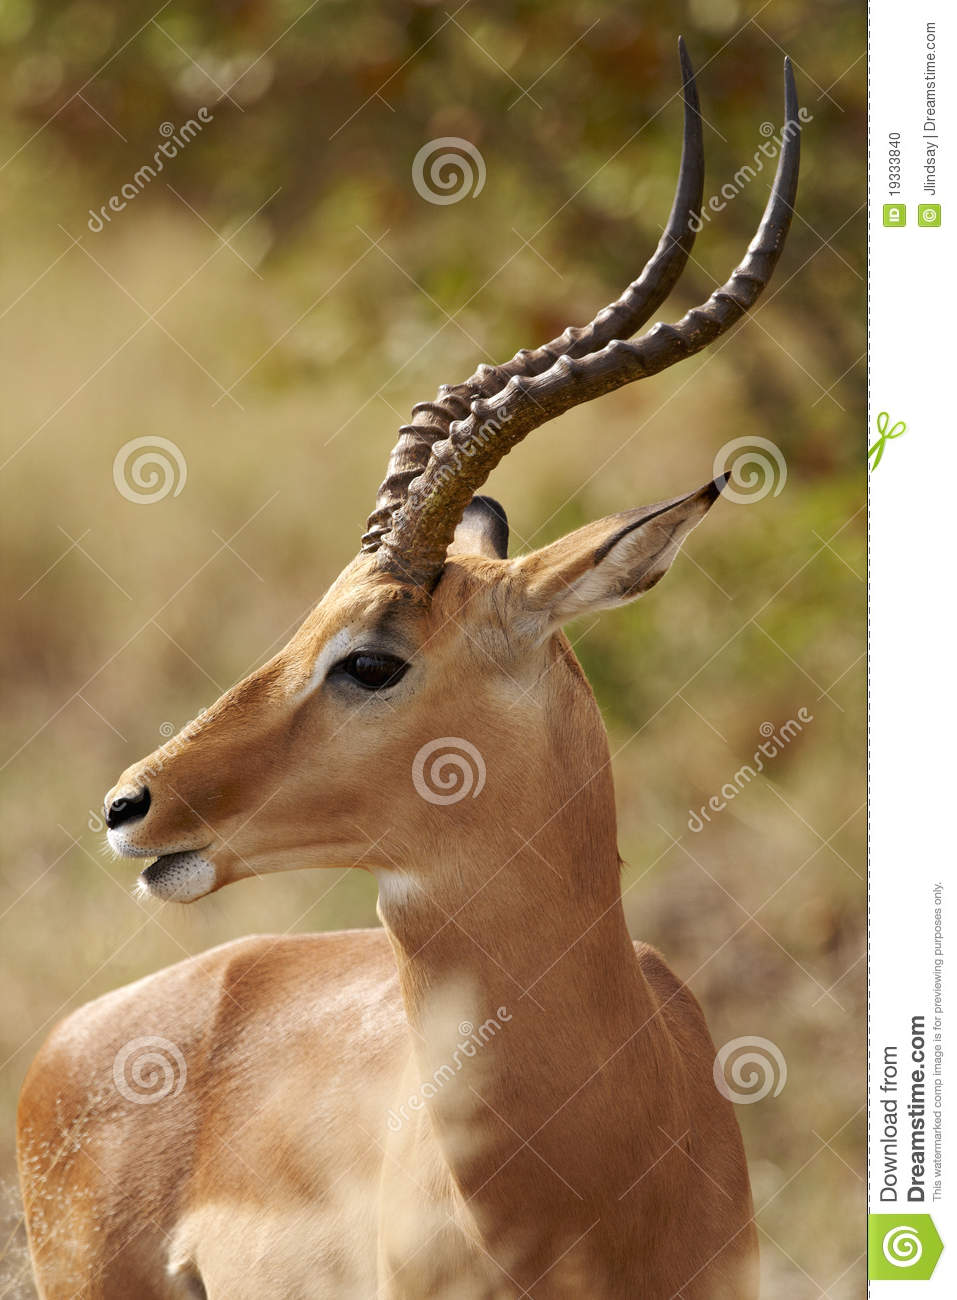 Impala ram in profile stock photo. Image of male, front ...